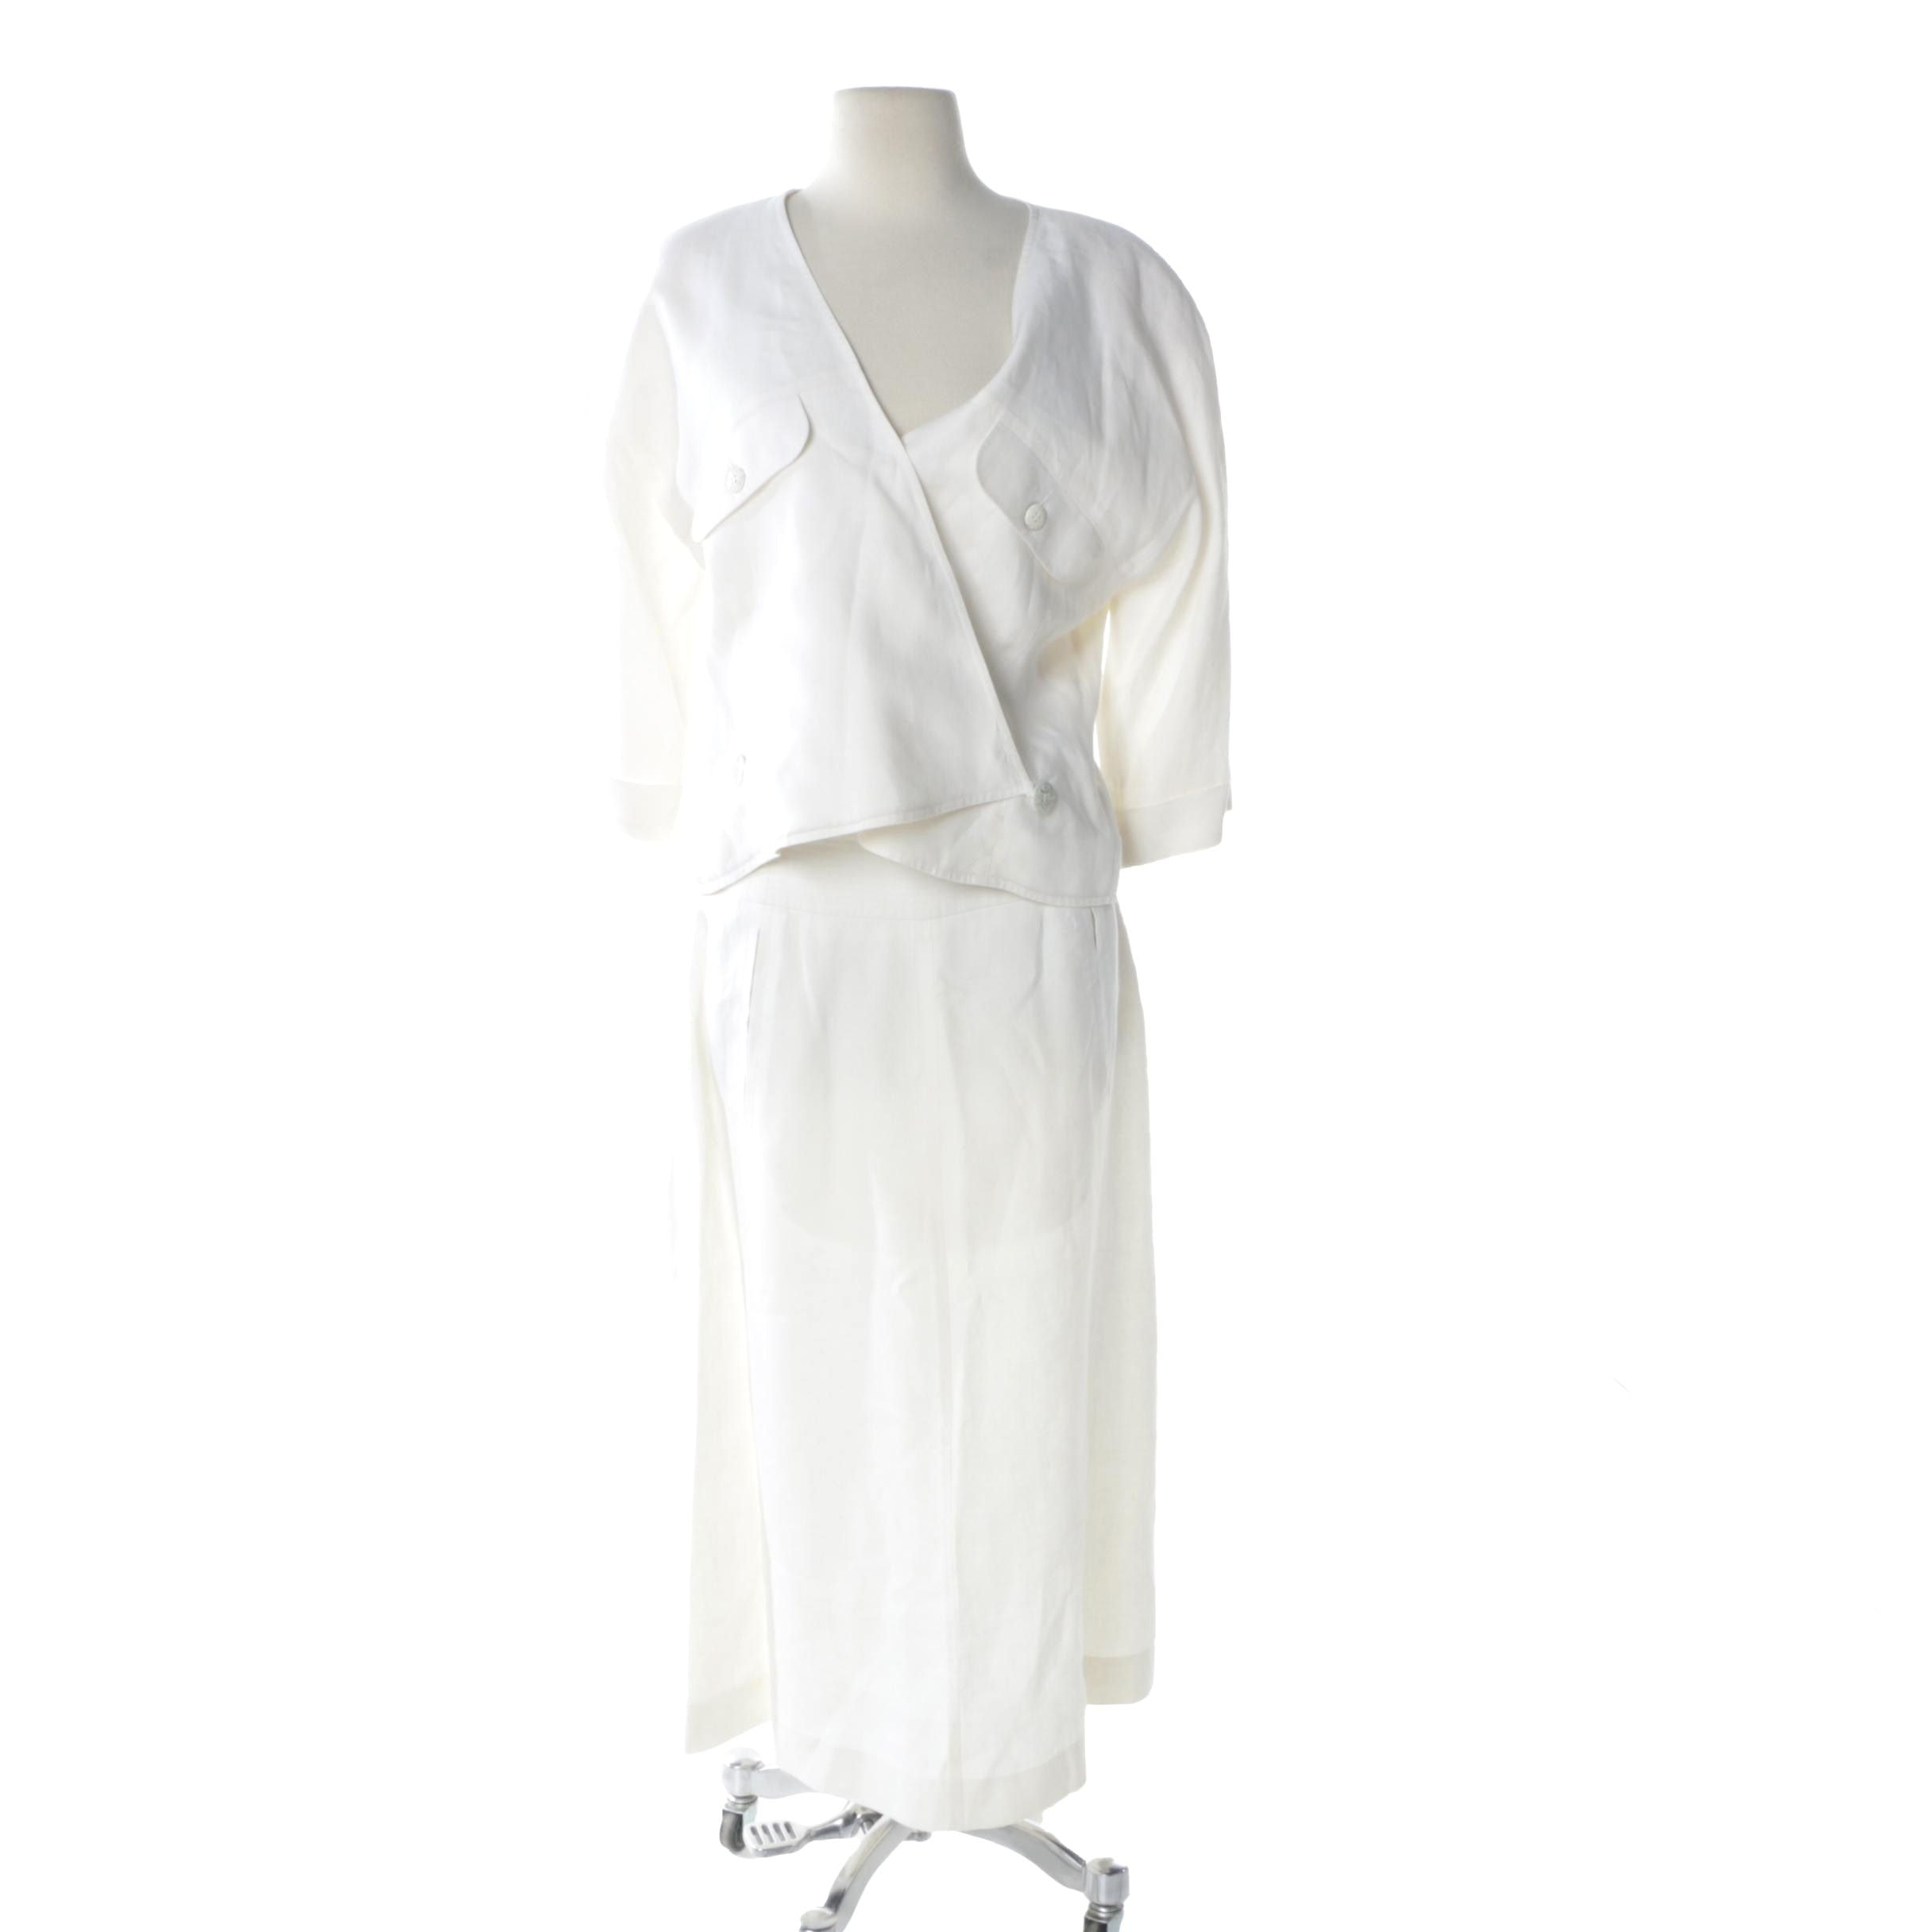 1980s Courreges Linen Skirt and Top Set